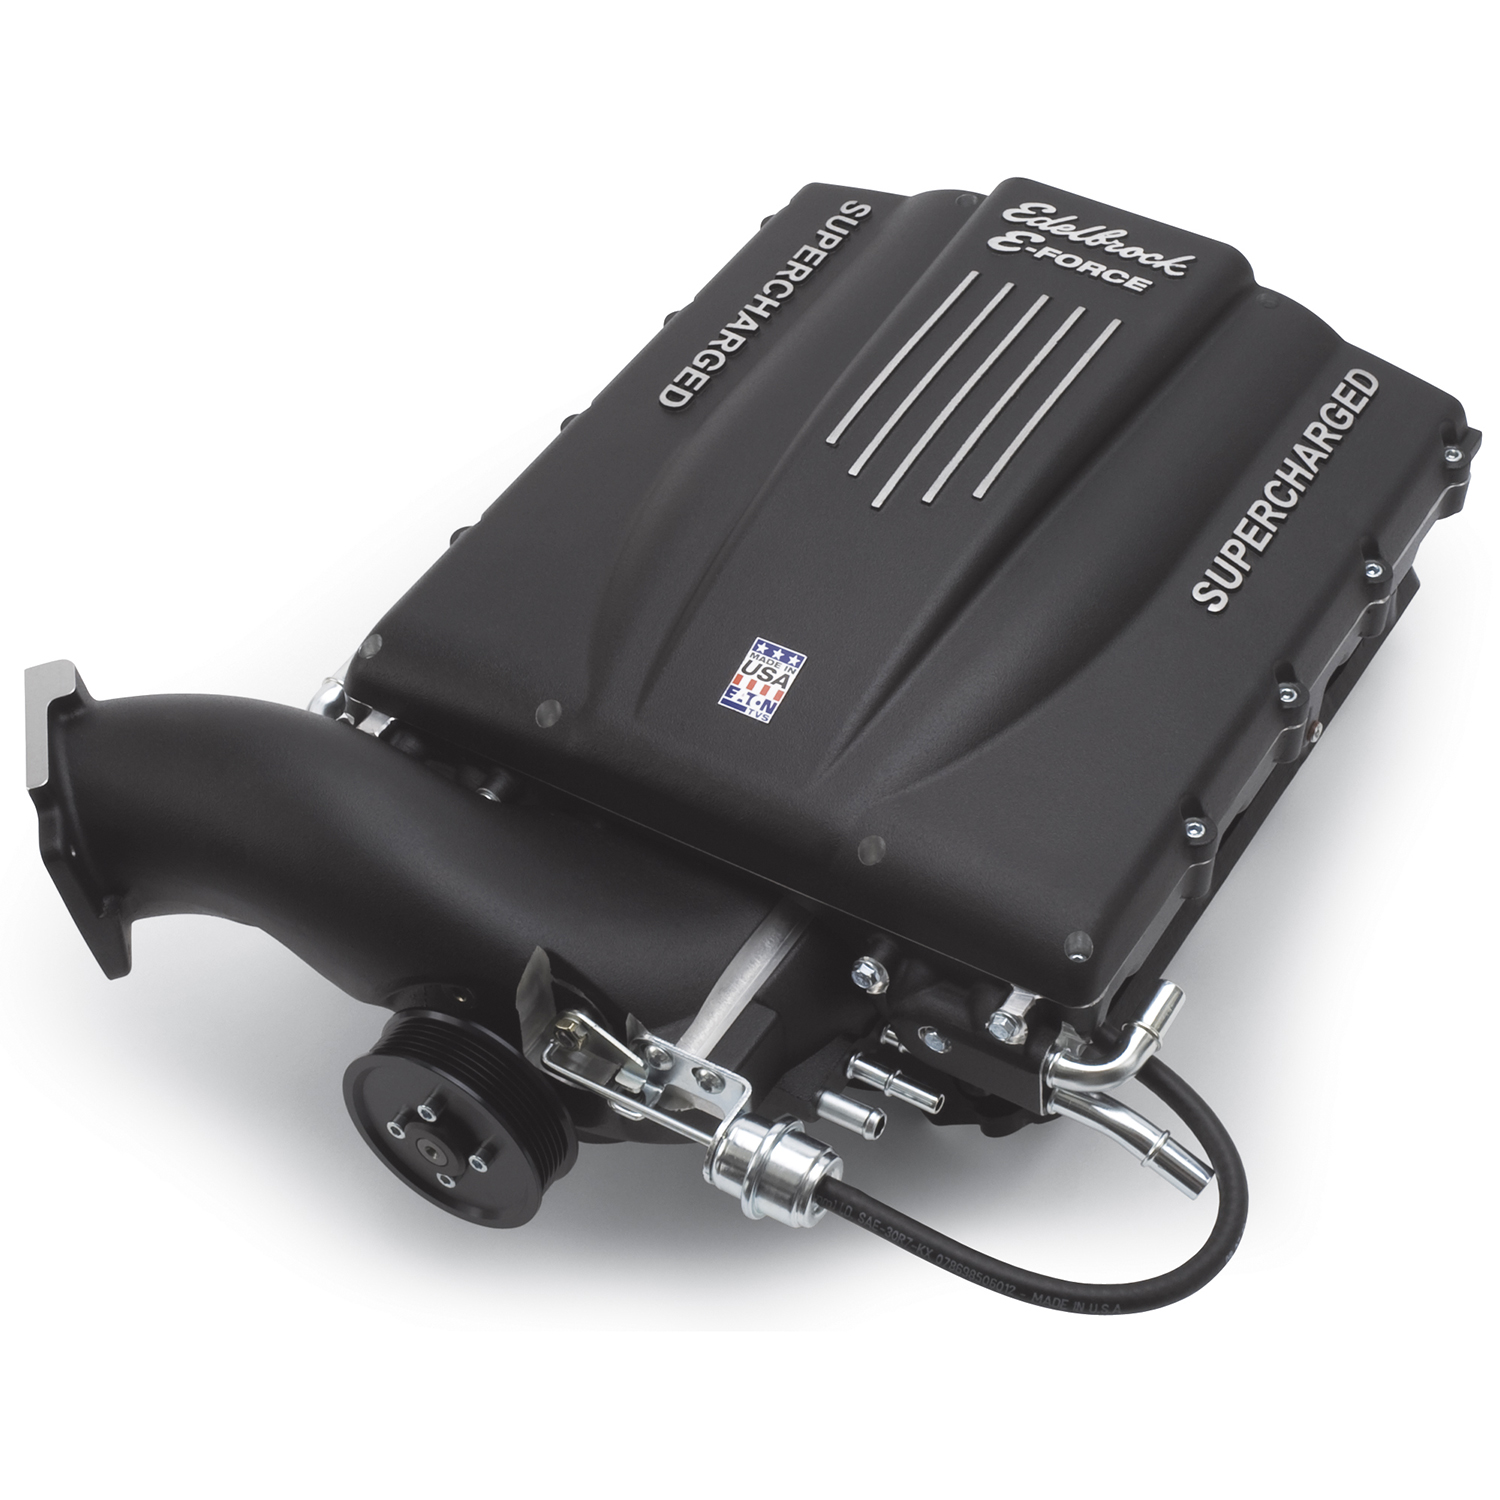 Supercharger For Silverado 4 8: Edelbrock E-Force Stage 1 Supercharger System, Chev/GM